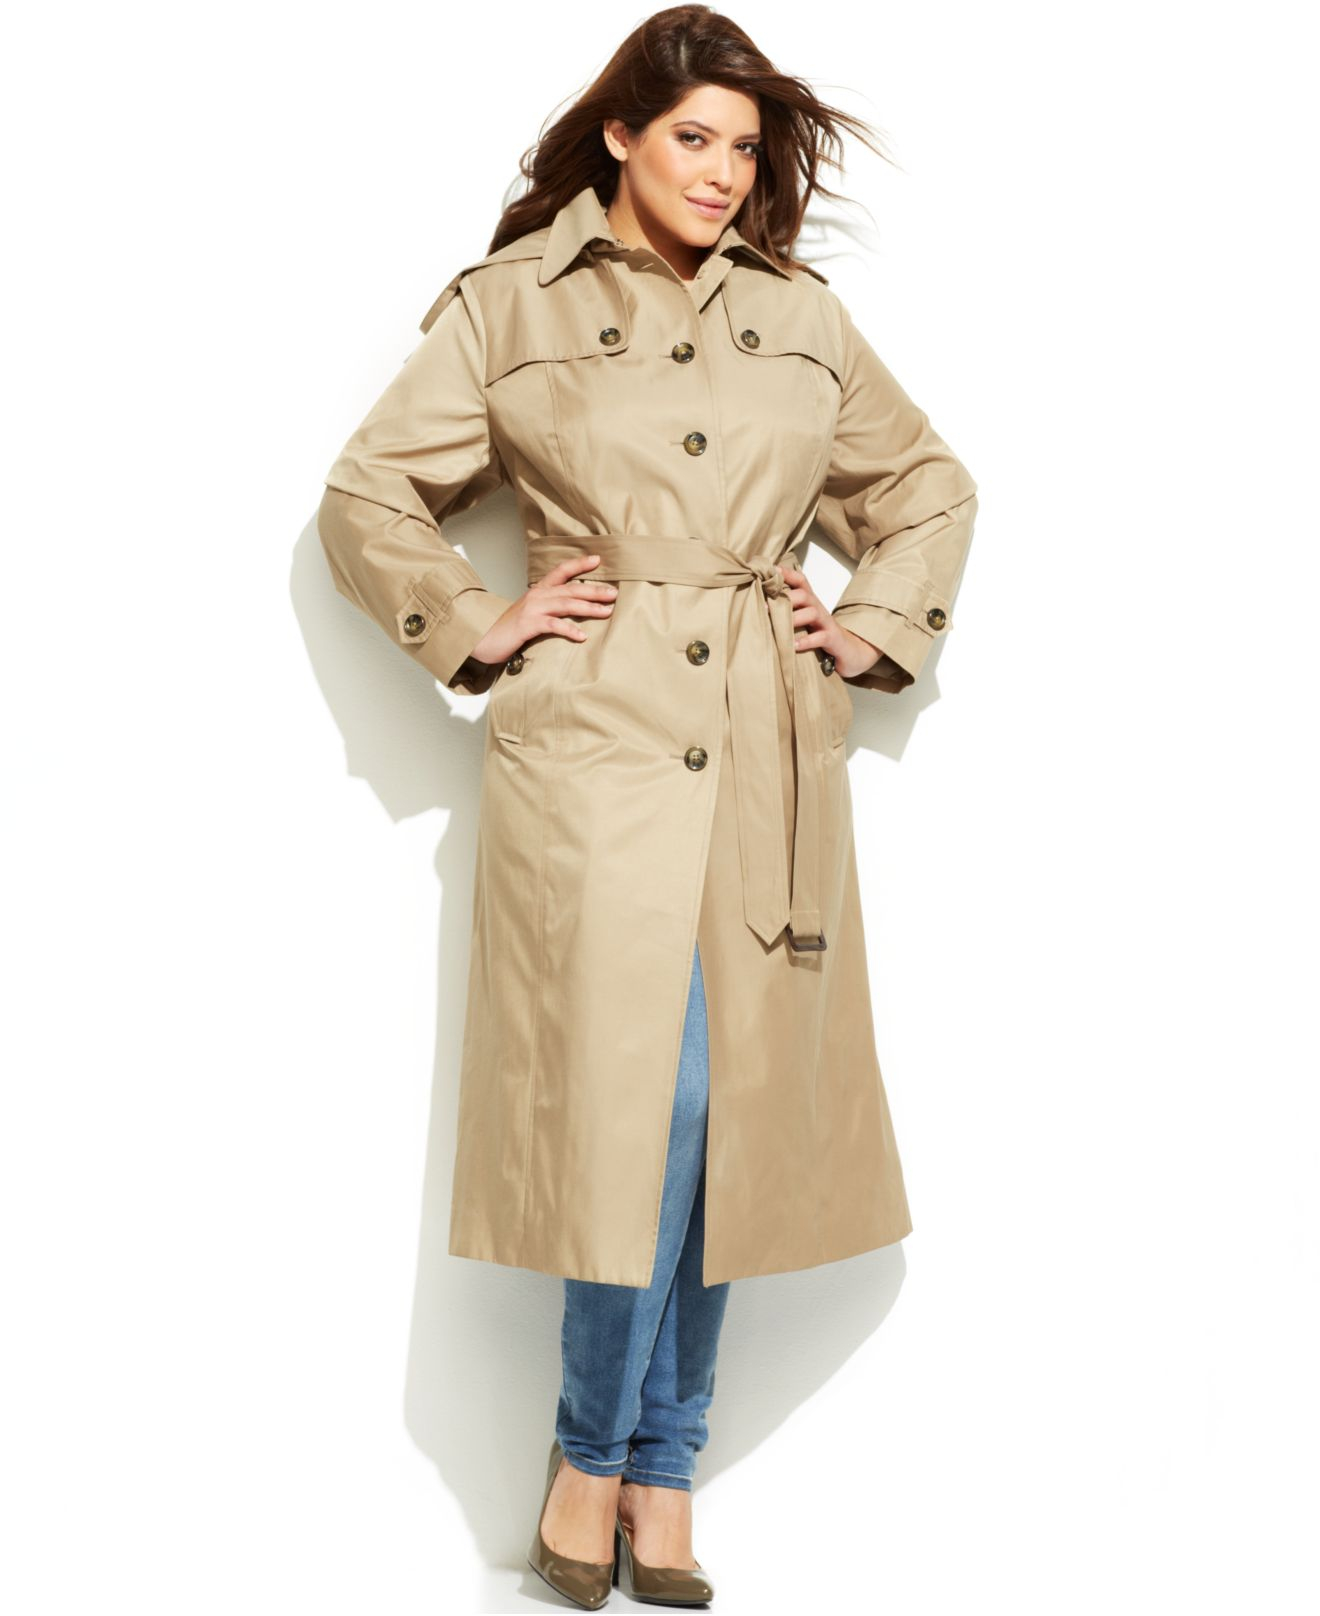 best sell outstanding features world-wide renown Women's Natural Plus Size Hooded Belted Maxi Trench Coat